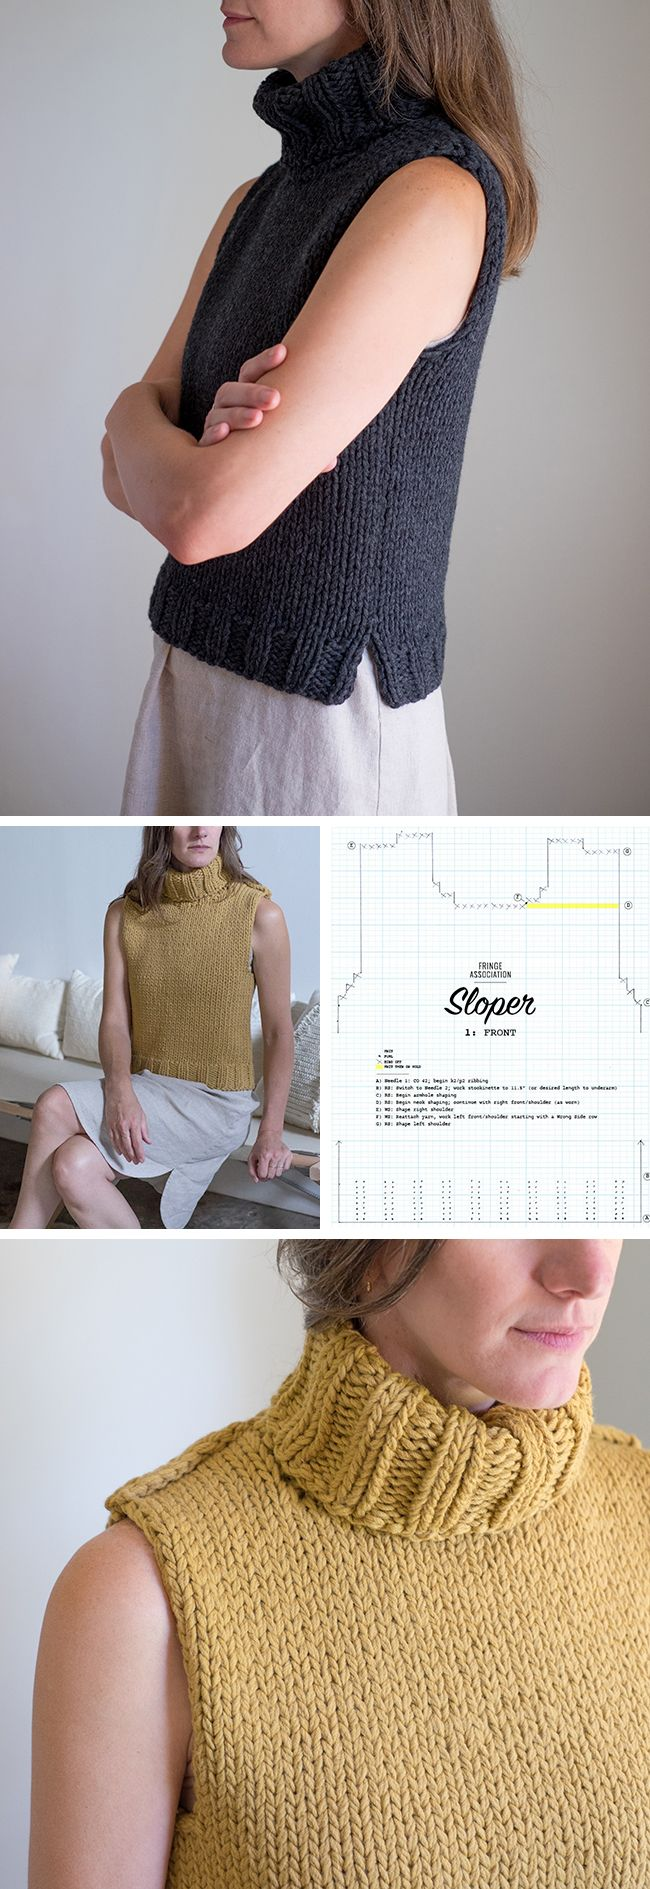 Sloper basic template for a sleeveless sweater free knitting sloper basic template for a sleeveless sweater free knitting pattern bankloansurffo Gallery